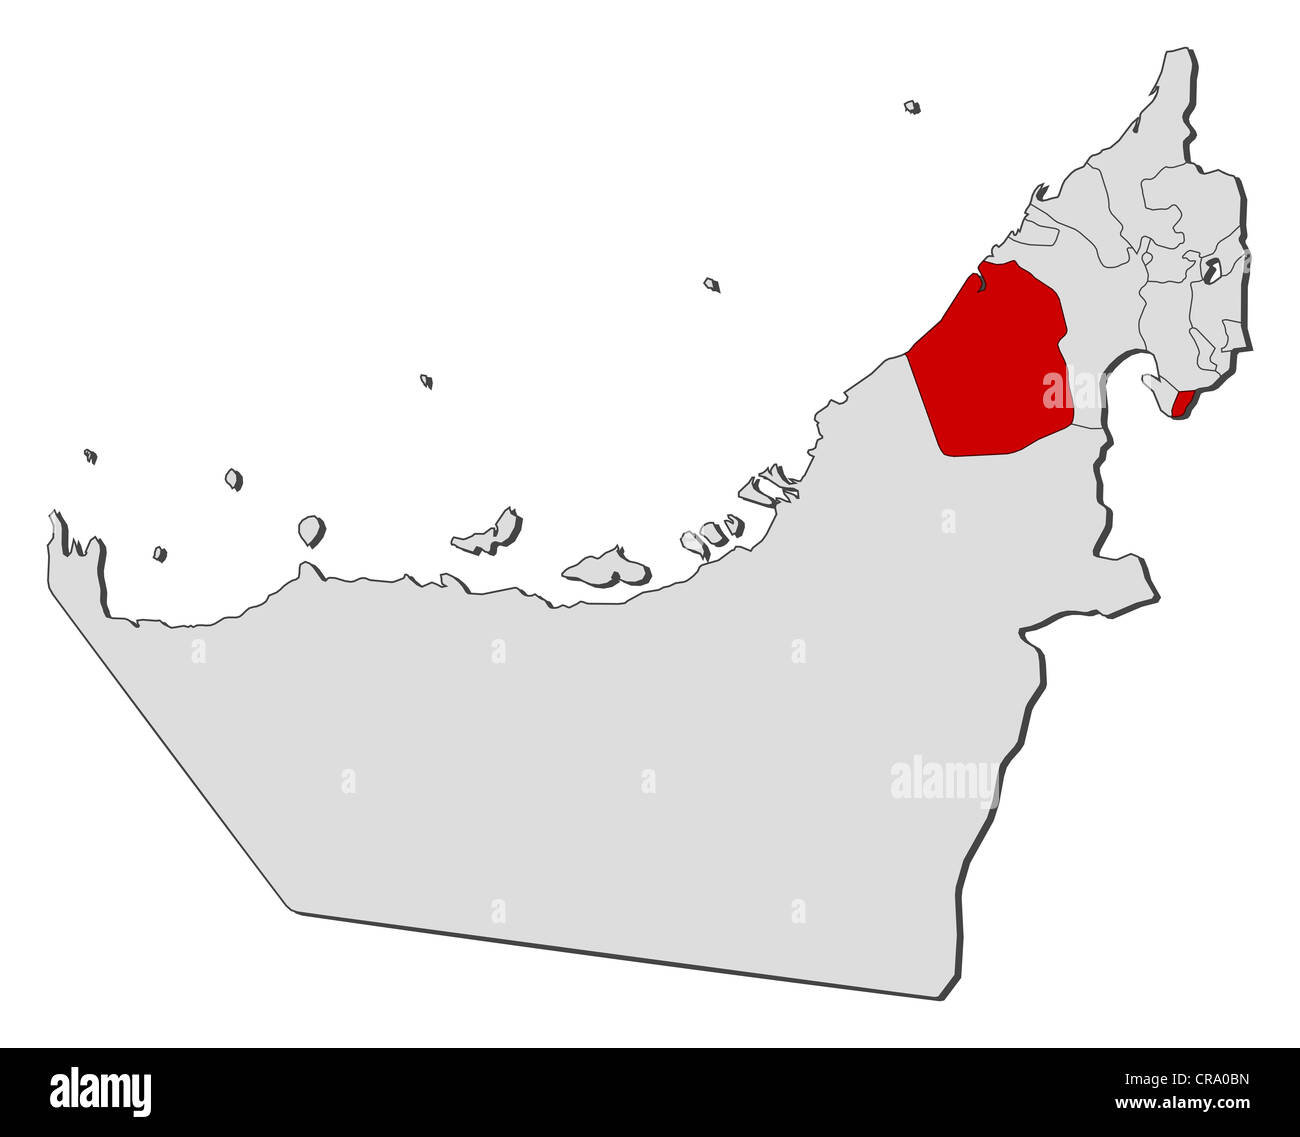 Political map of the United Arab Emirates with the several emirates where Dubai is highlighted. - Stock Image